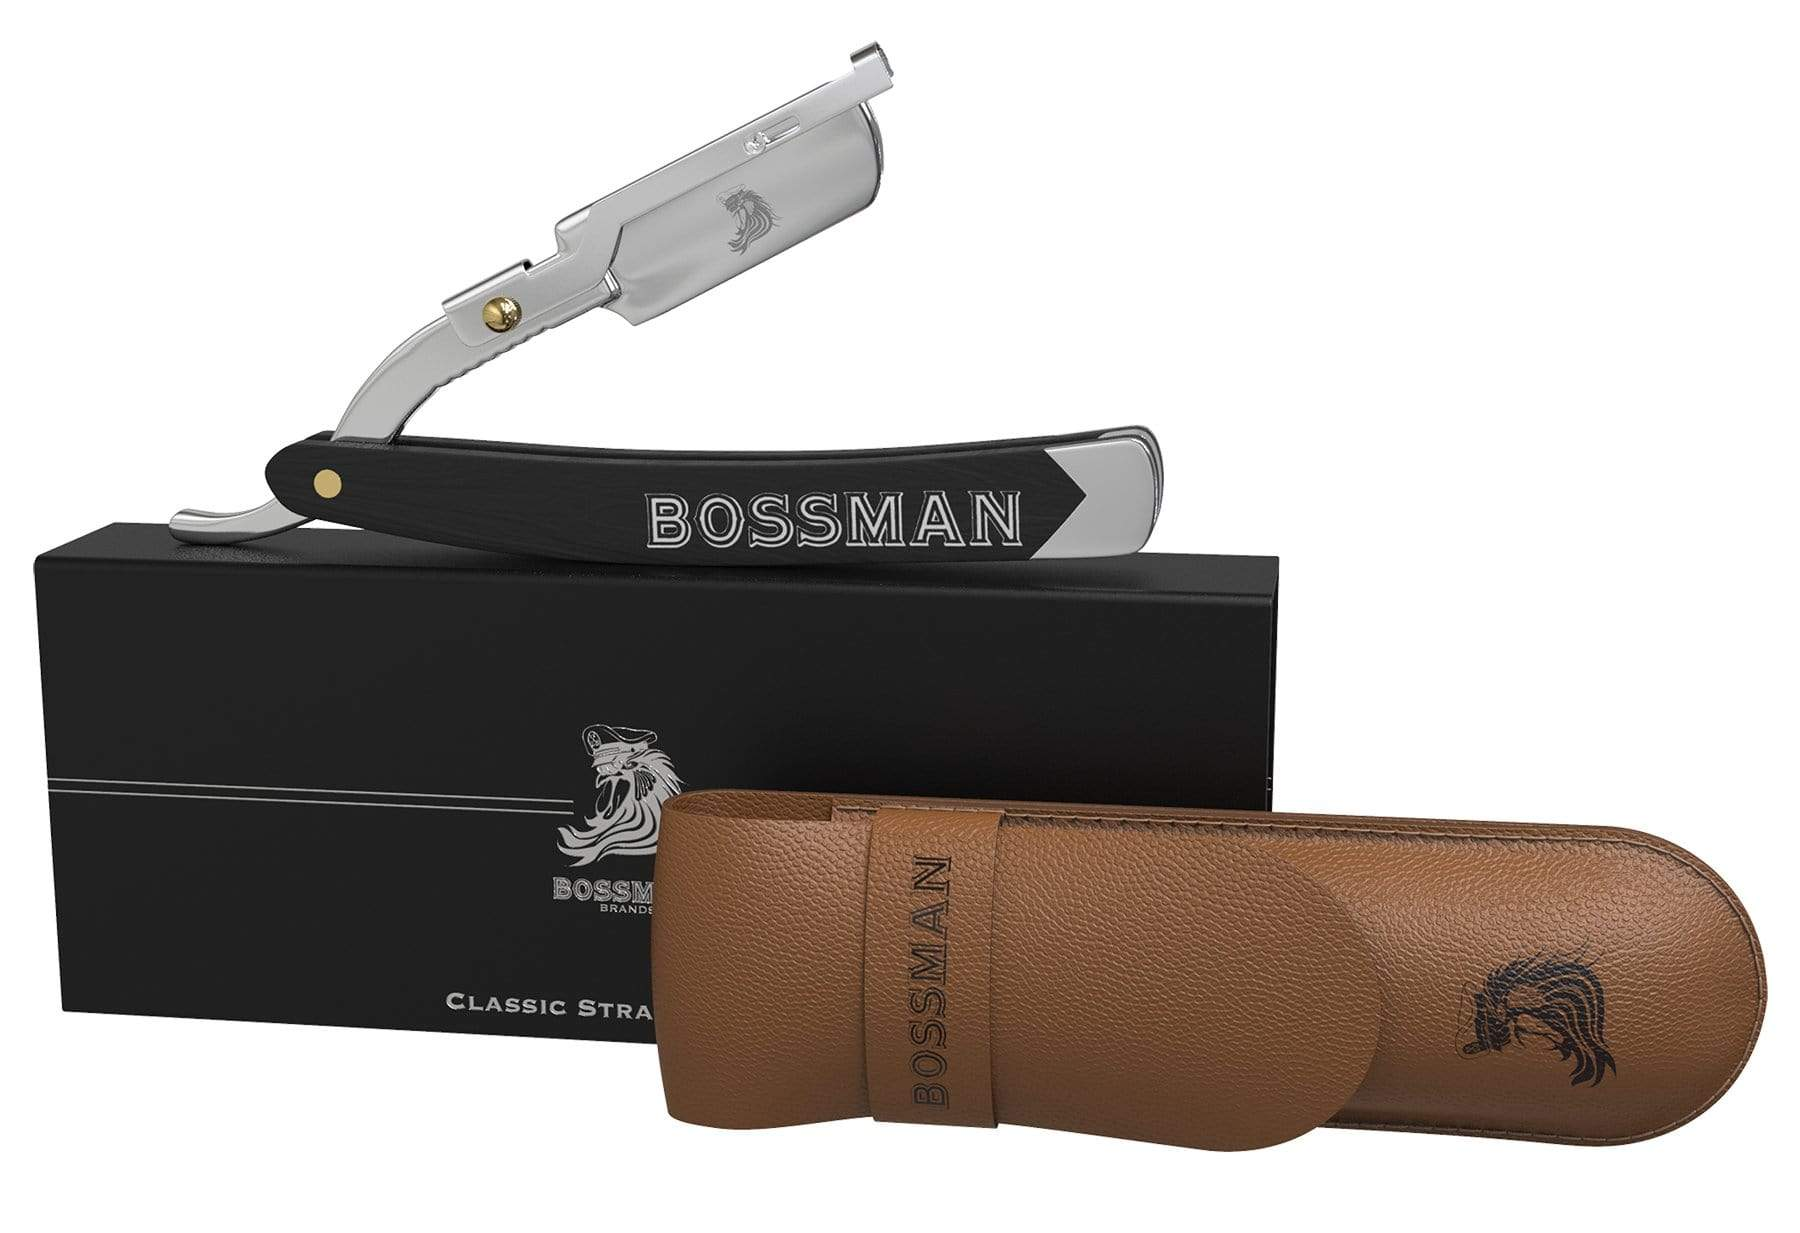 Bossman Straight Razors with Magnetic Box